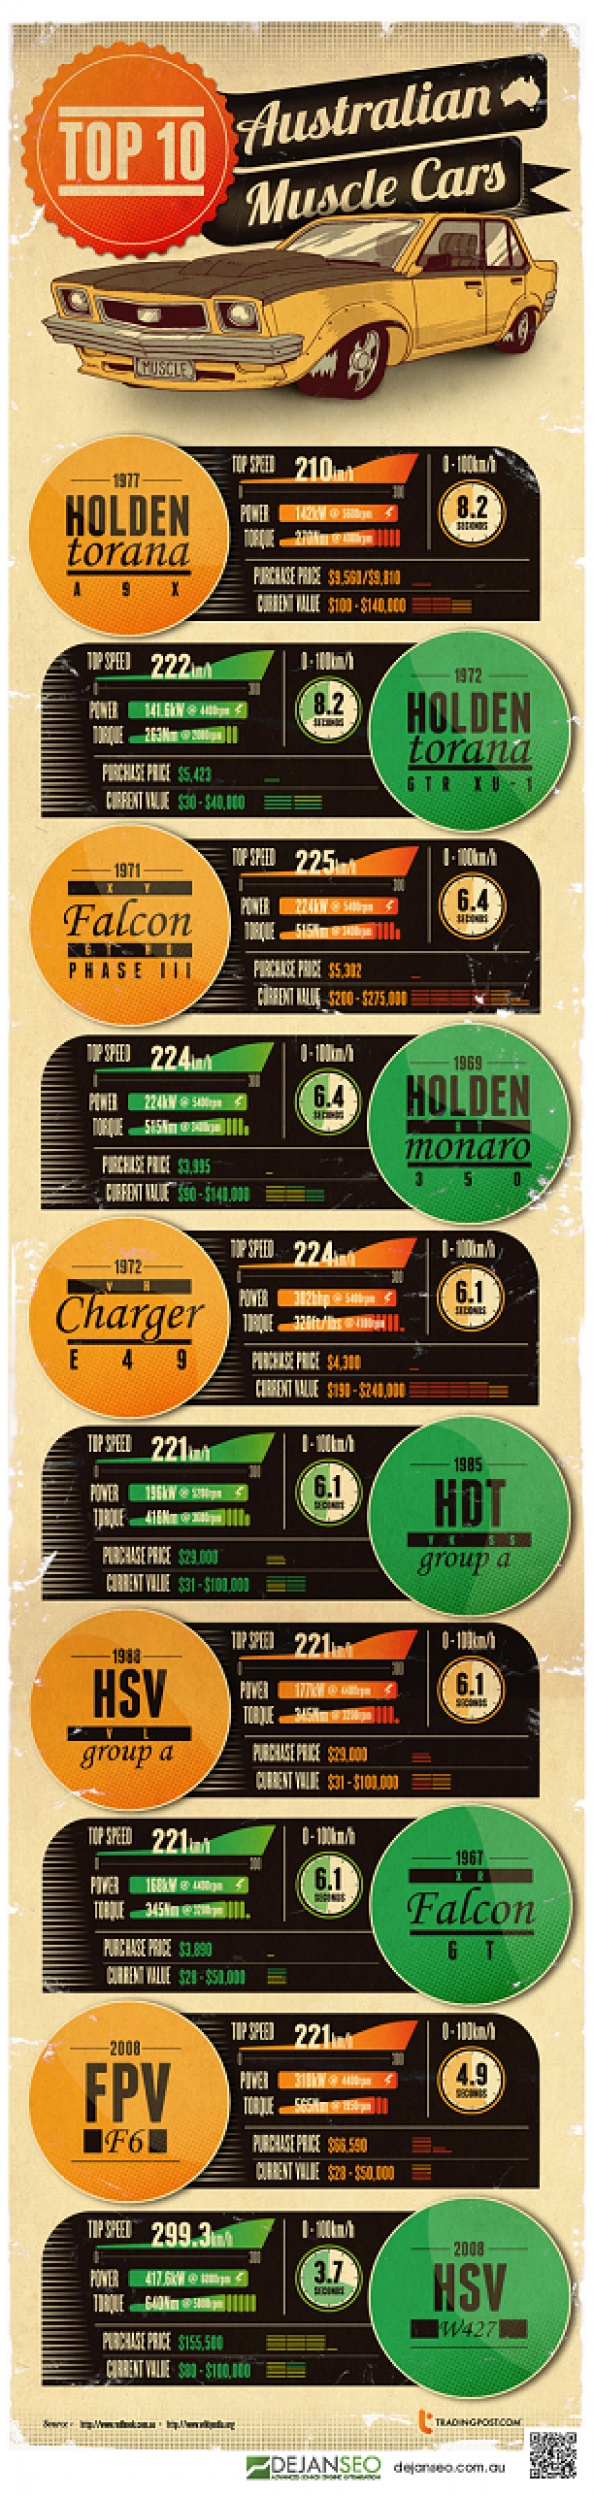 How cool is this?!  Top 10 Australian Muscle Cars Infographic